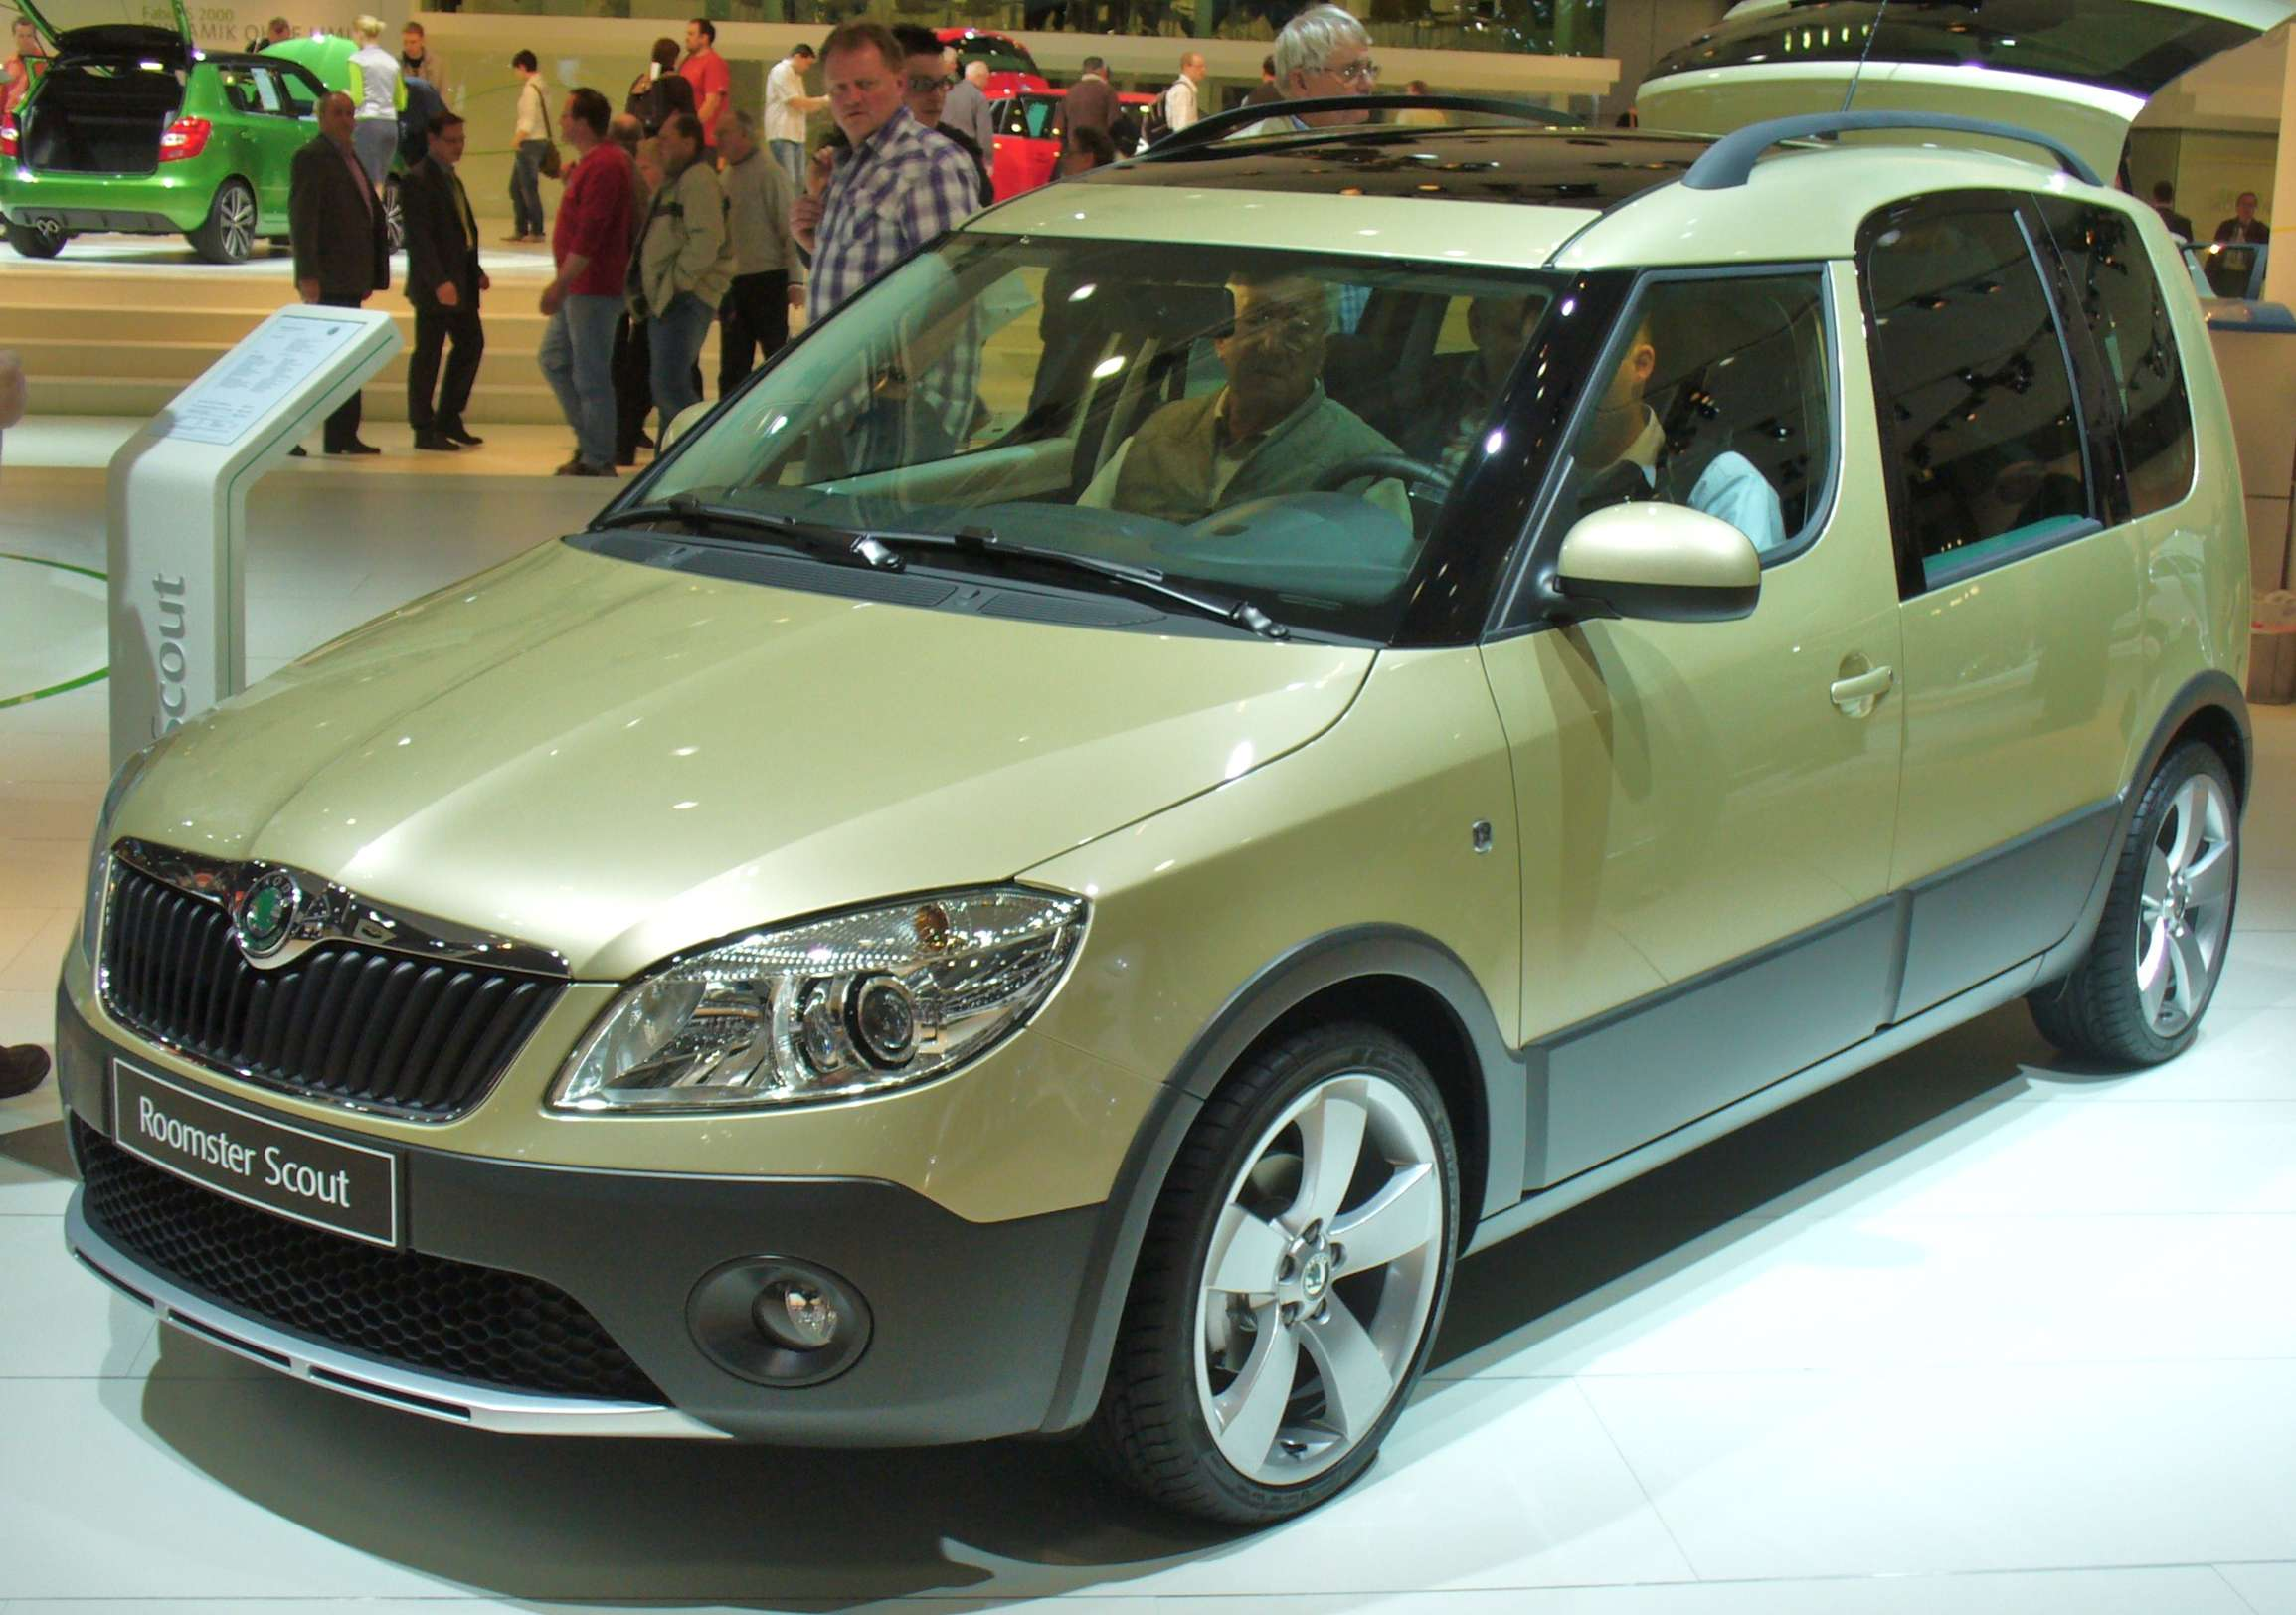 Skoda Roomster Scout #7103489